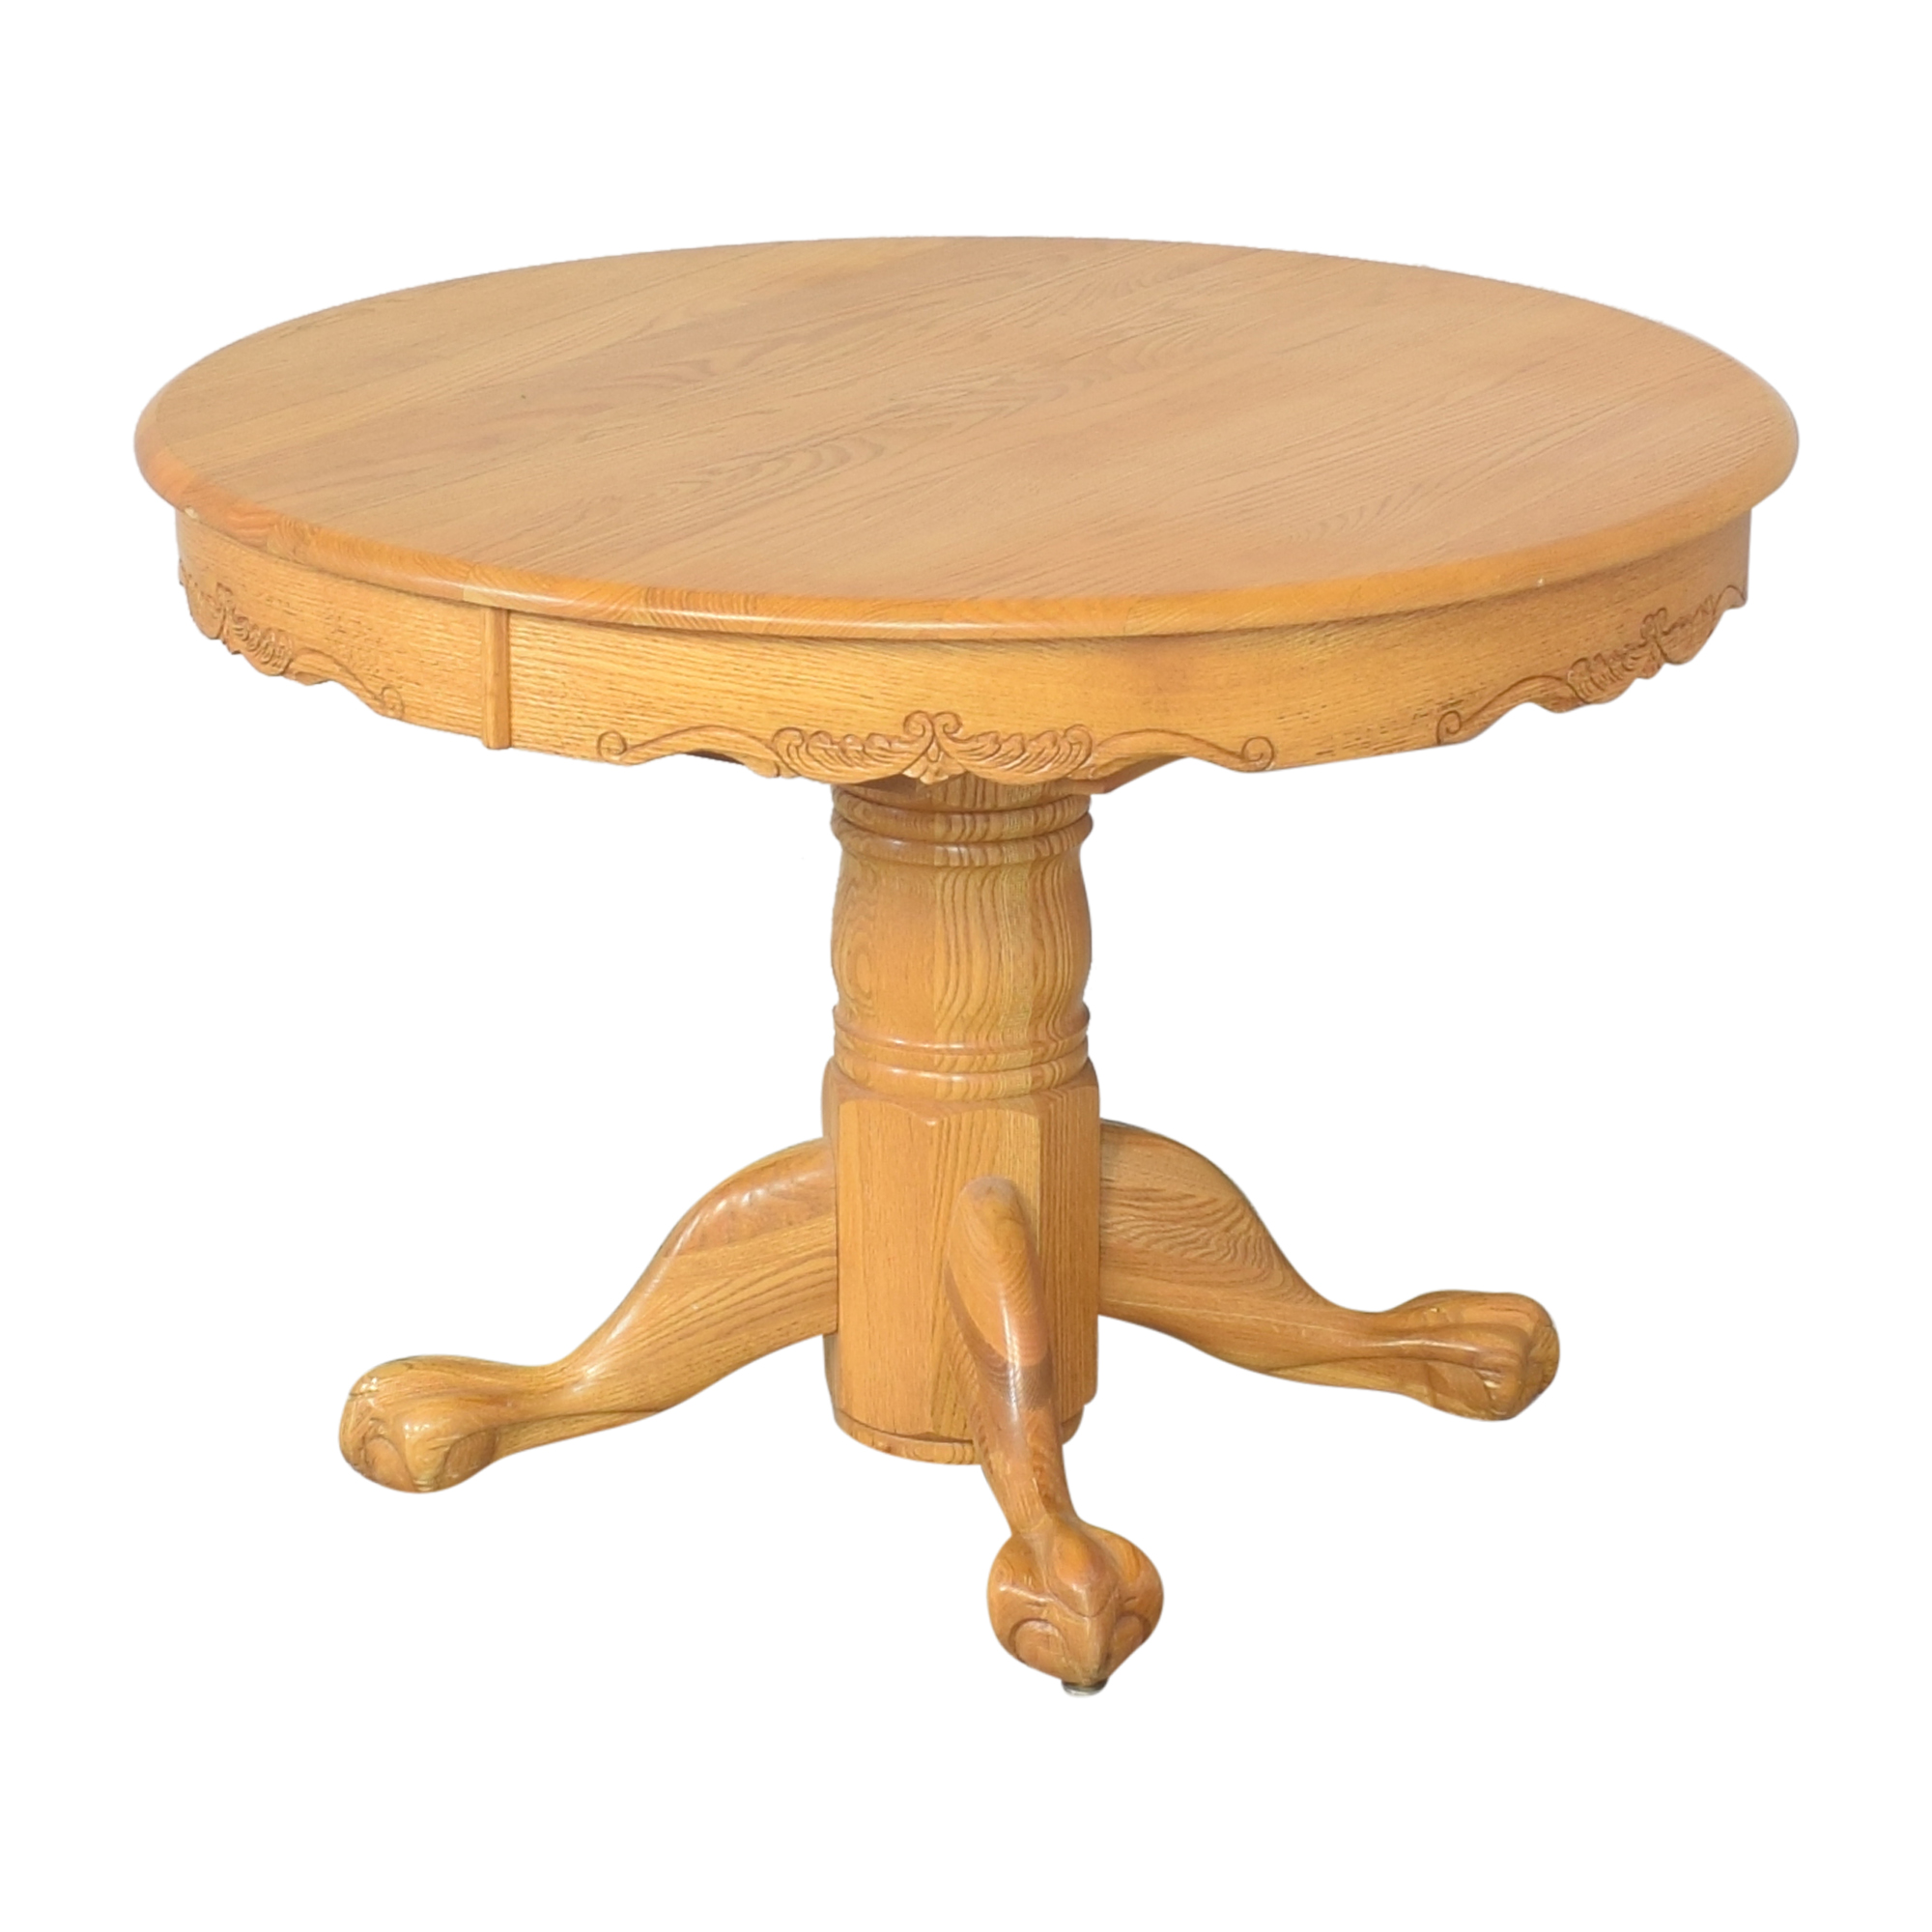 Shin-Lee Shin-Lee Round Extending Kitchen Table discount